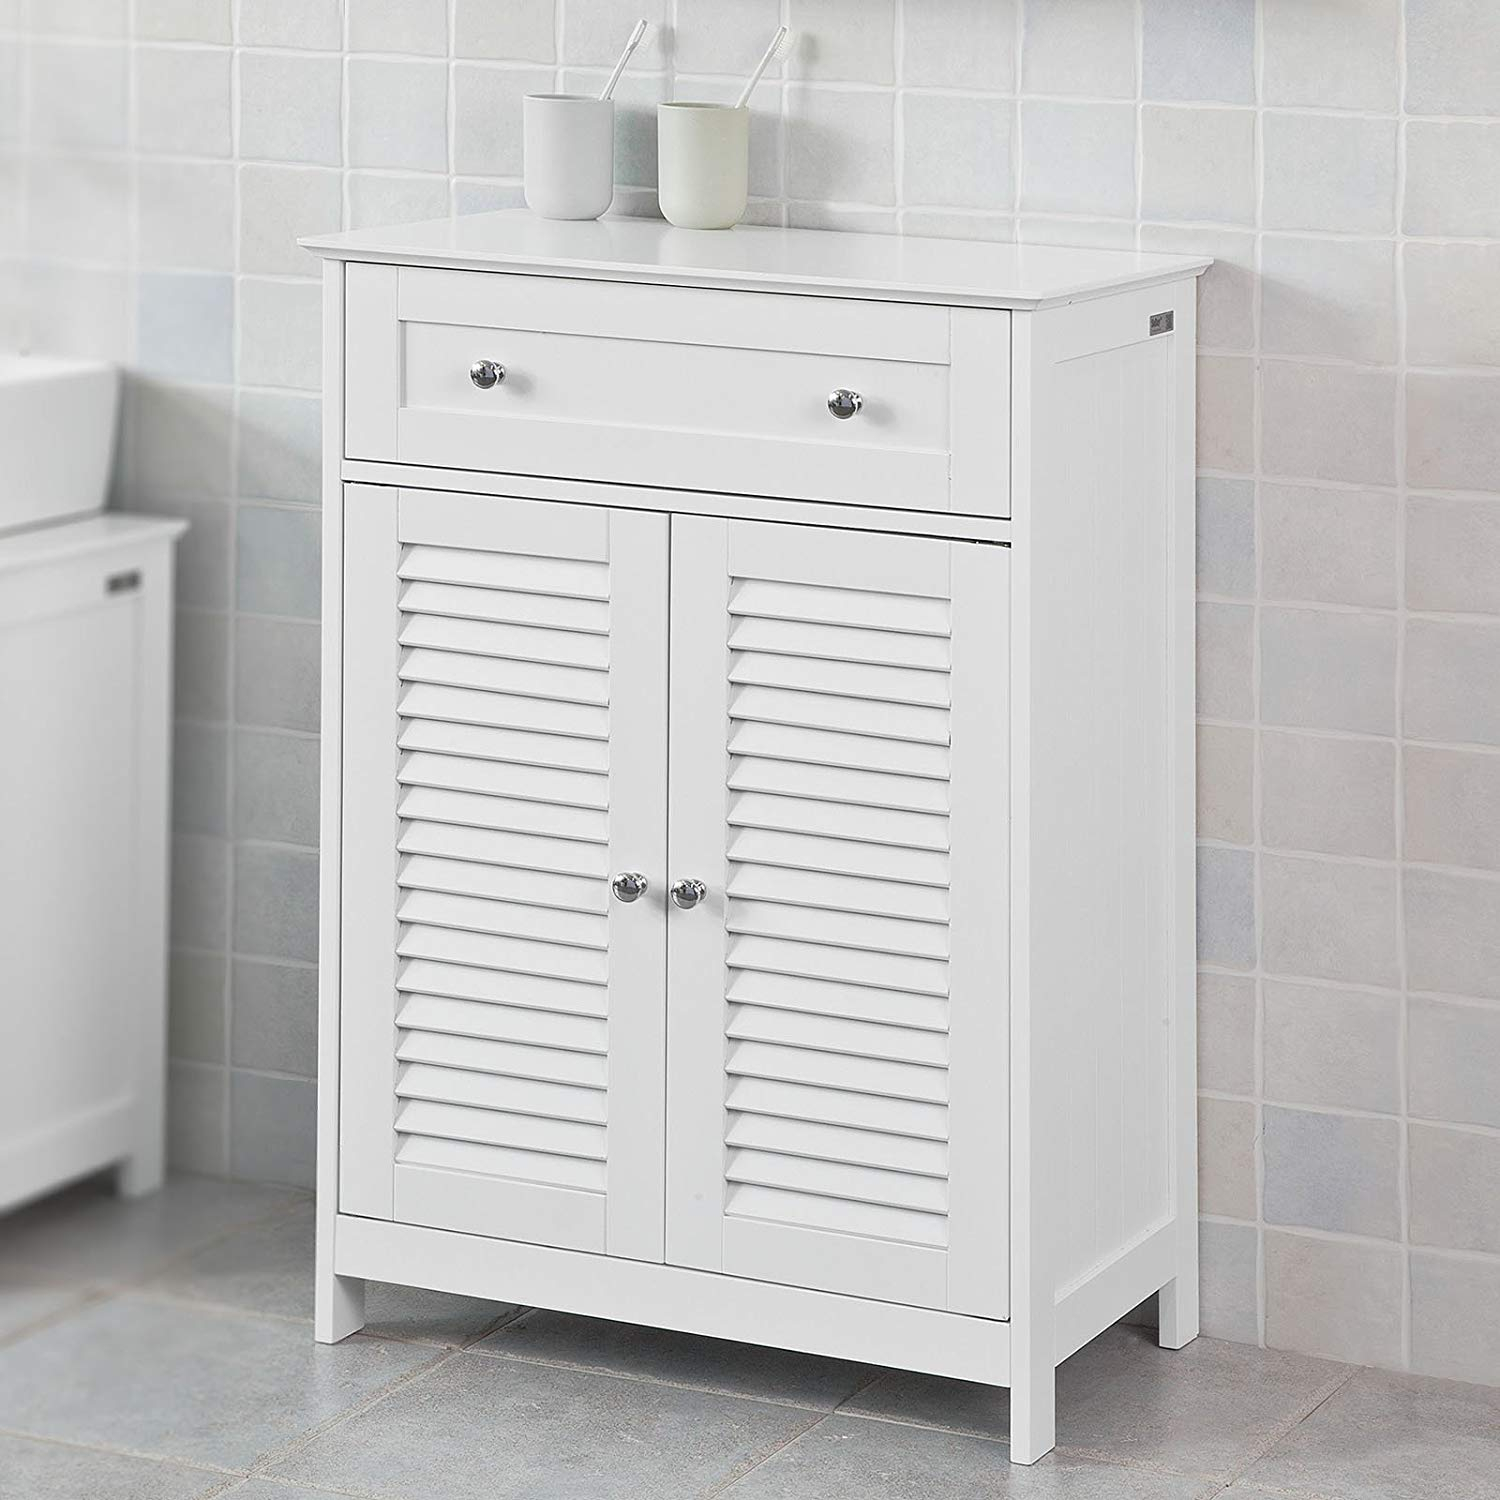 Engaging Bathroom Storage Wicker Drawers Wooden Units Dunelm with regard to sizing 1500 X 1500